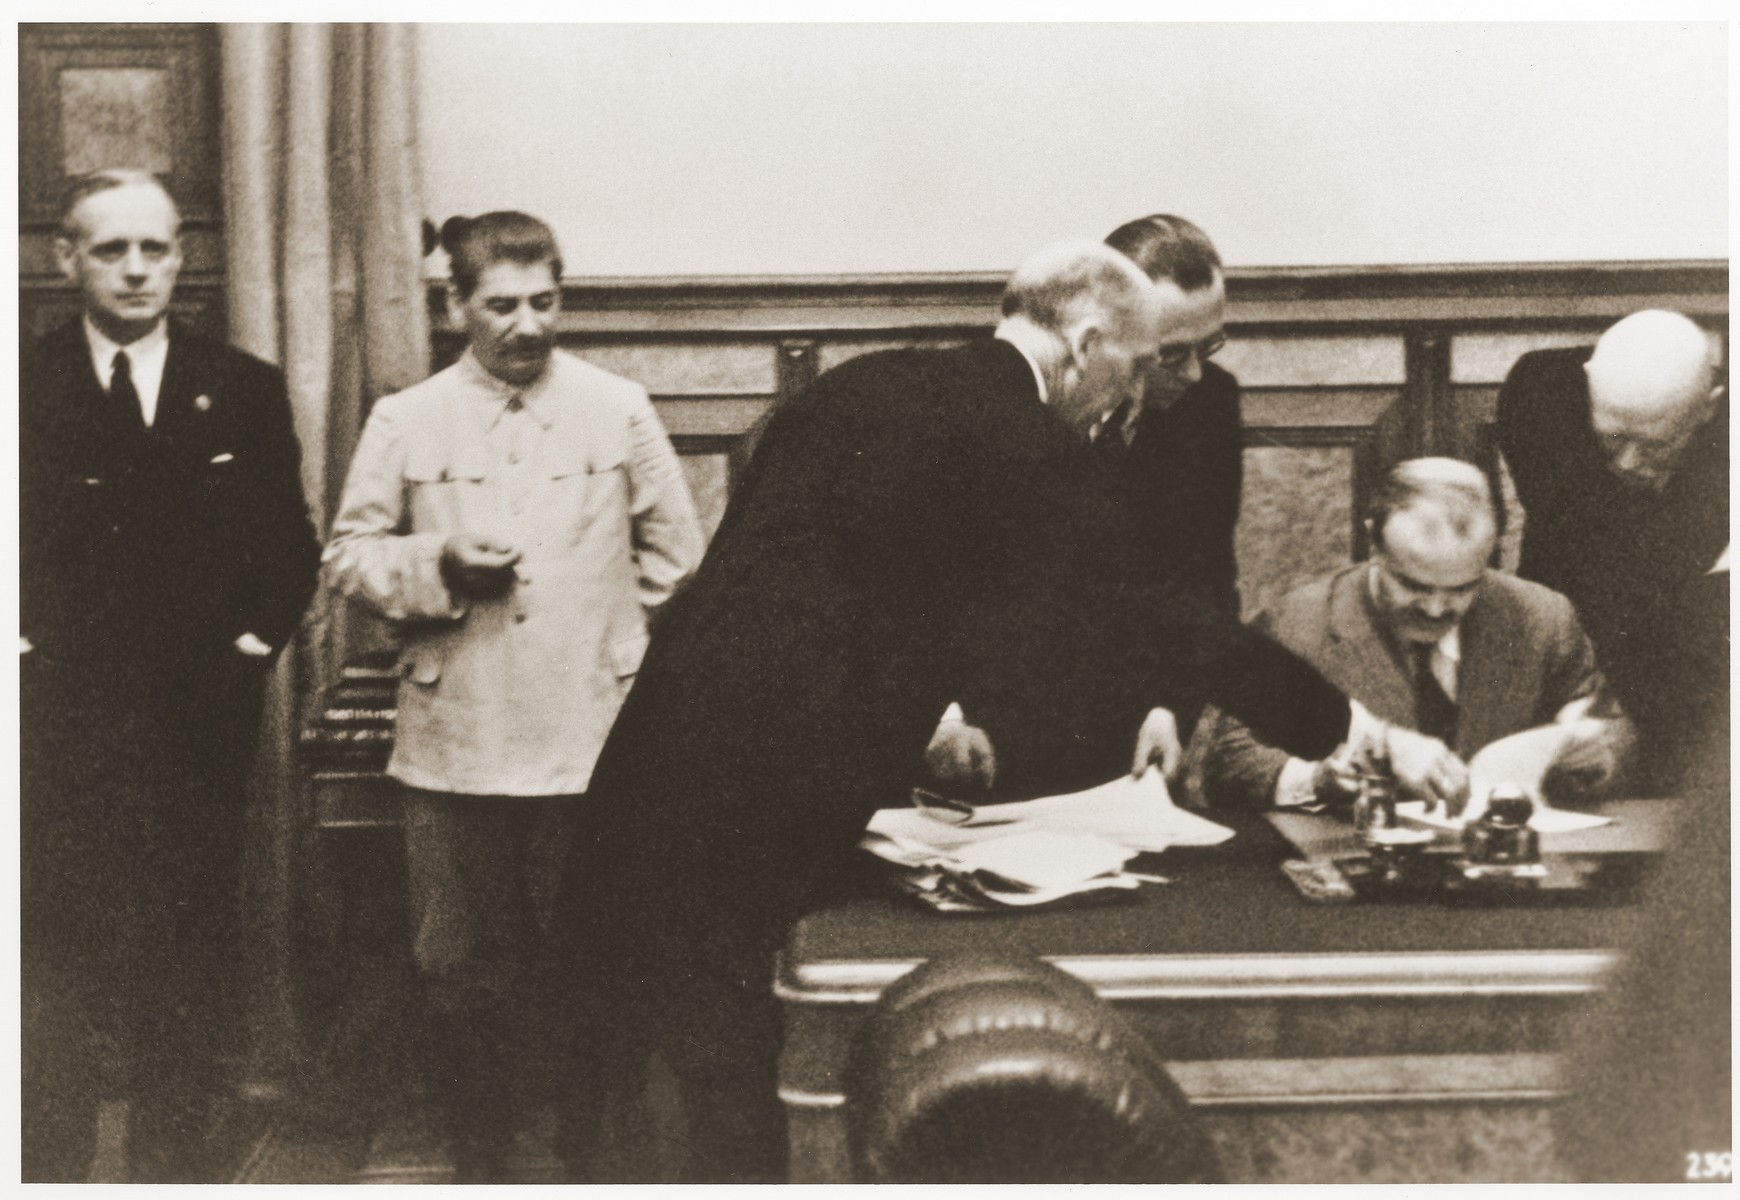 Soviet foreign minister Vyacheslav Molotov (seated) signs the Nazi-Soviet Non-Aggression Pact in Berlin.    Standing (from left to right) are: Joachim von Ribbentrop; Joseph Stalin; German Undersecretary of State Gauss; German Legate Hilger; and Ambassador Graf von Schulenburg.